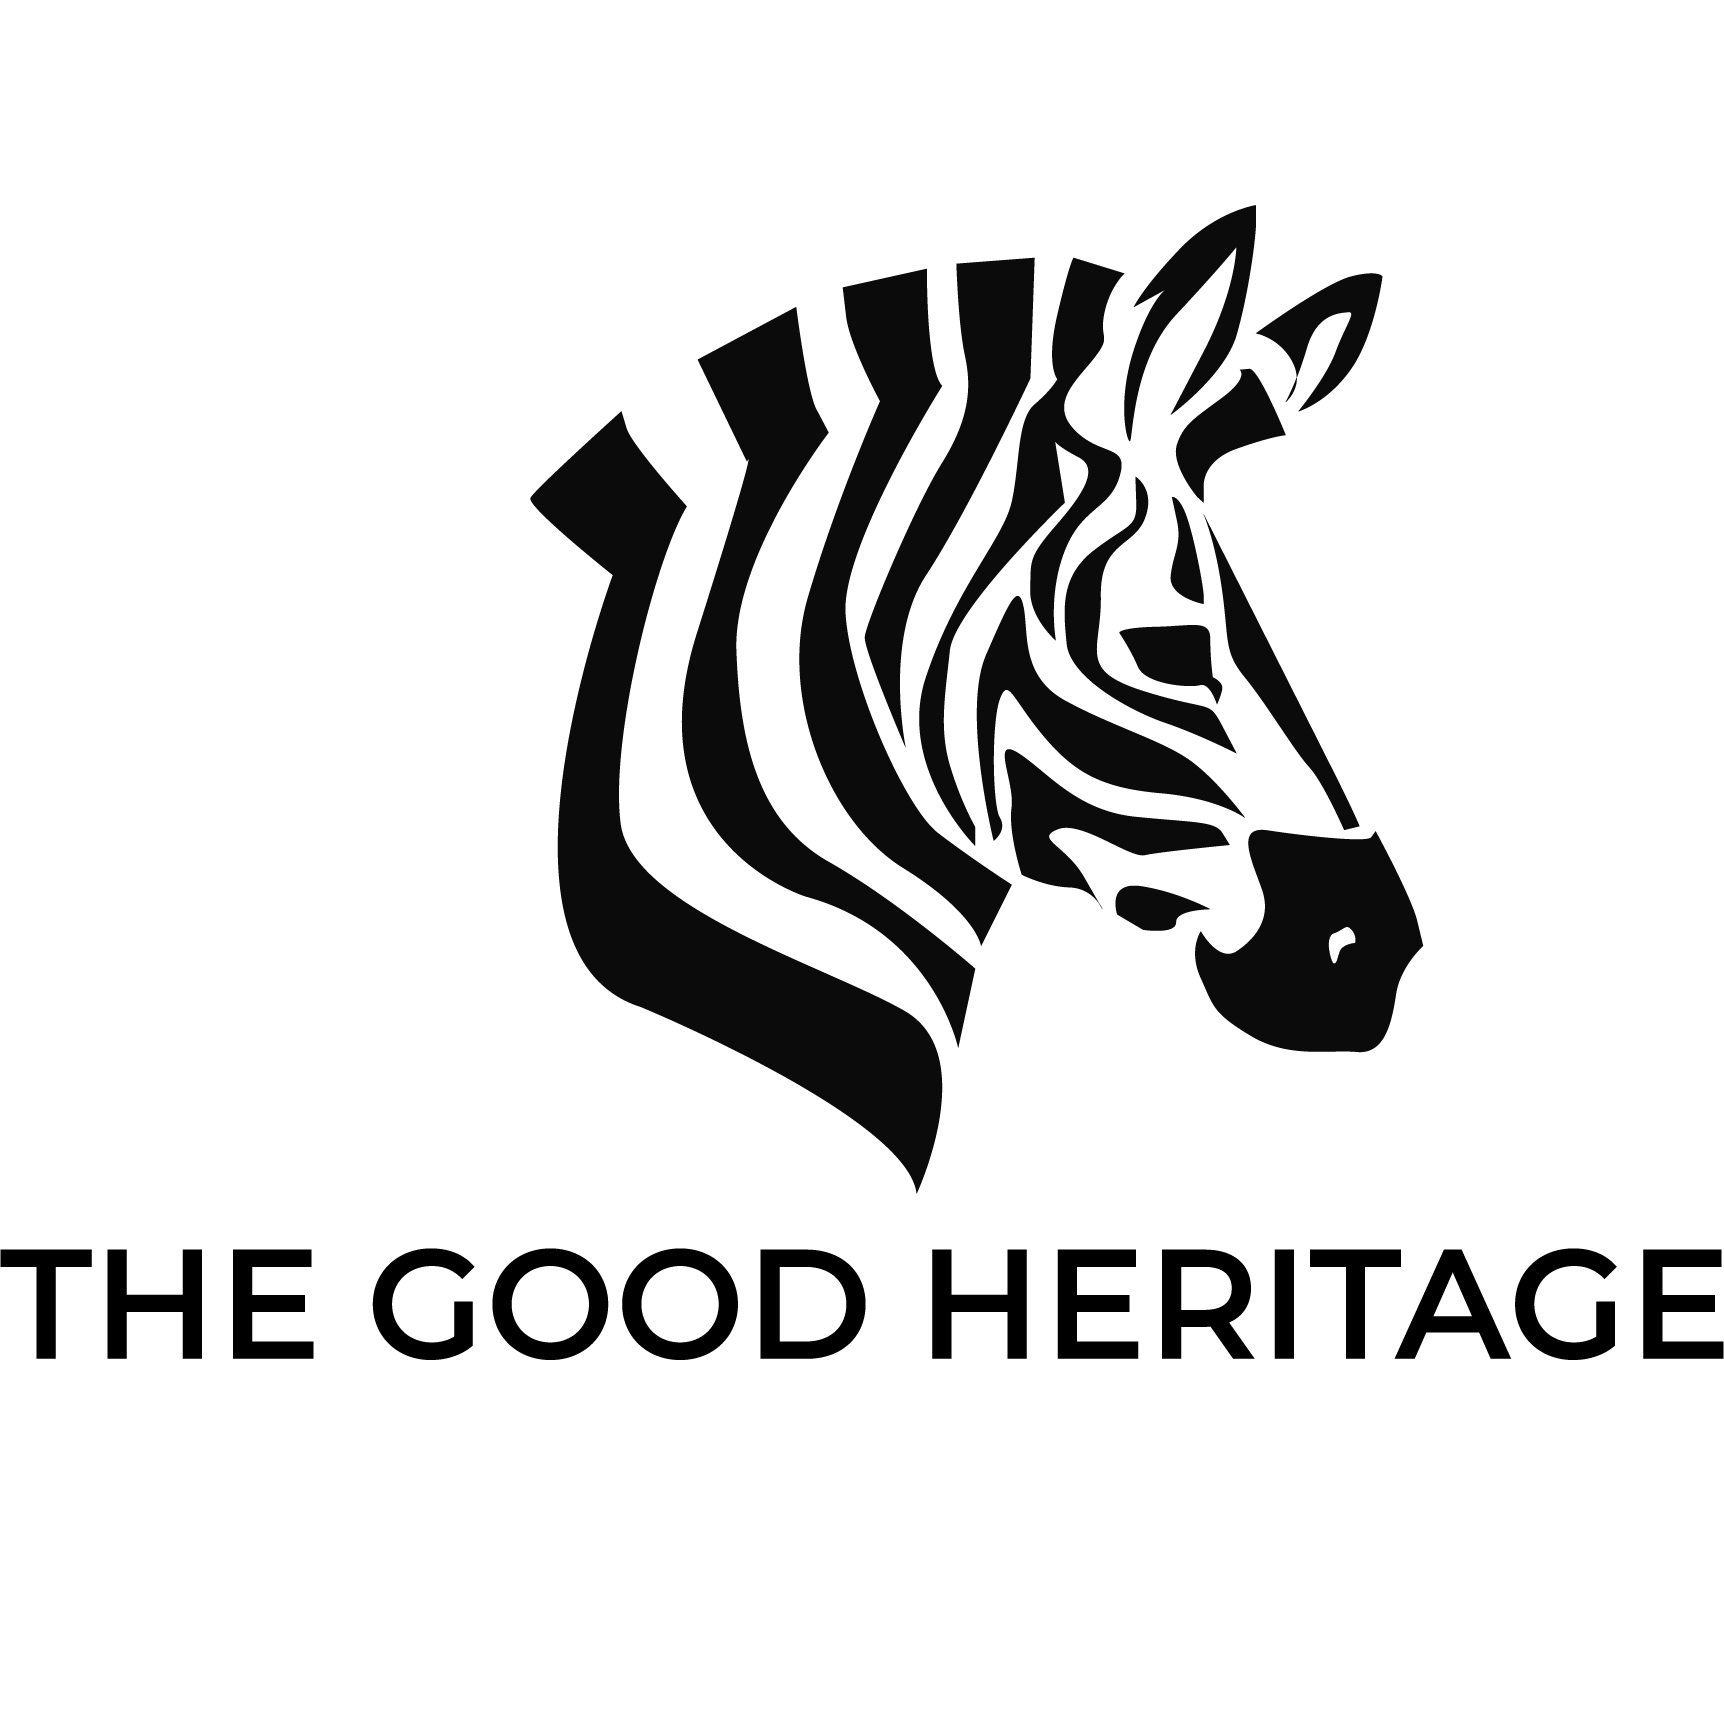 The Good Heritage